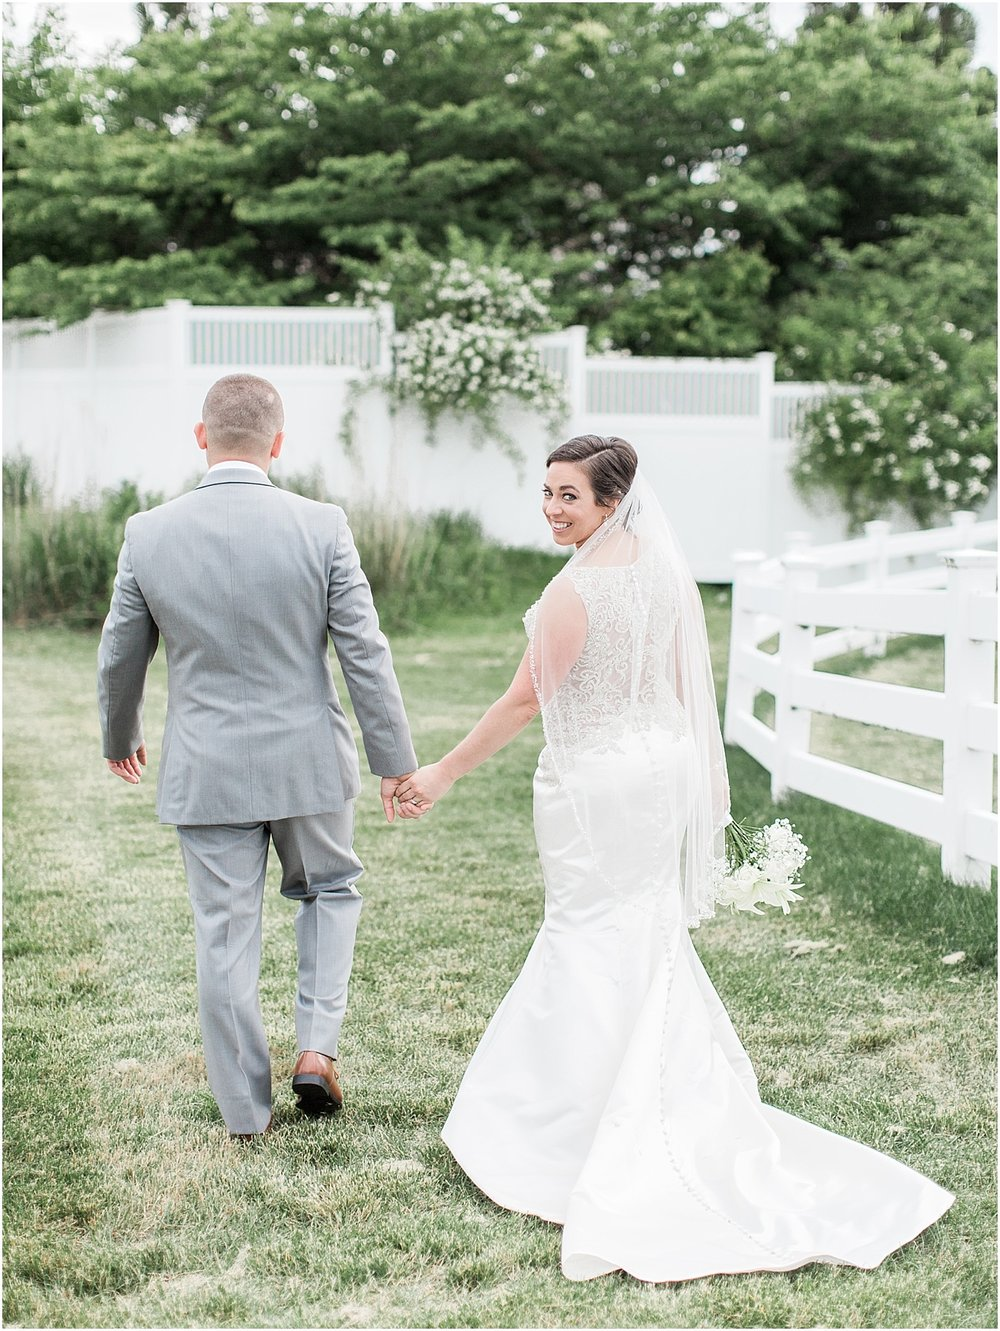 nicole_stephen_cape_club_nicky_falmouth_cod_boston_wedding_photographer_meredith_jane_photography_photo_0176.jpg